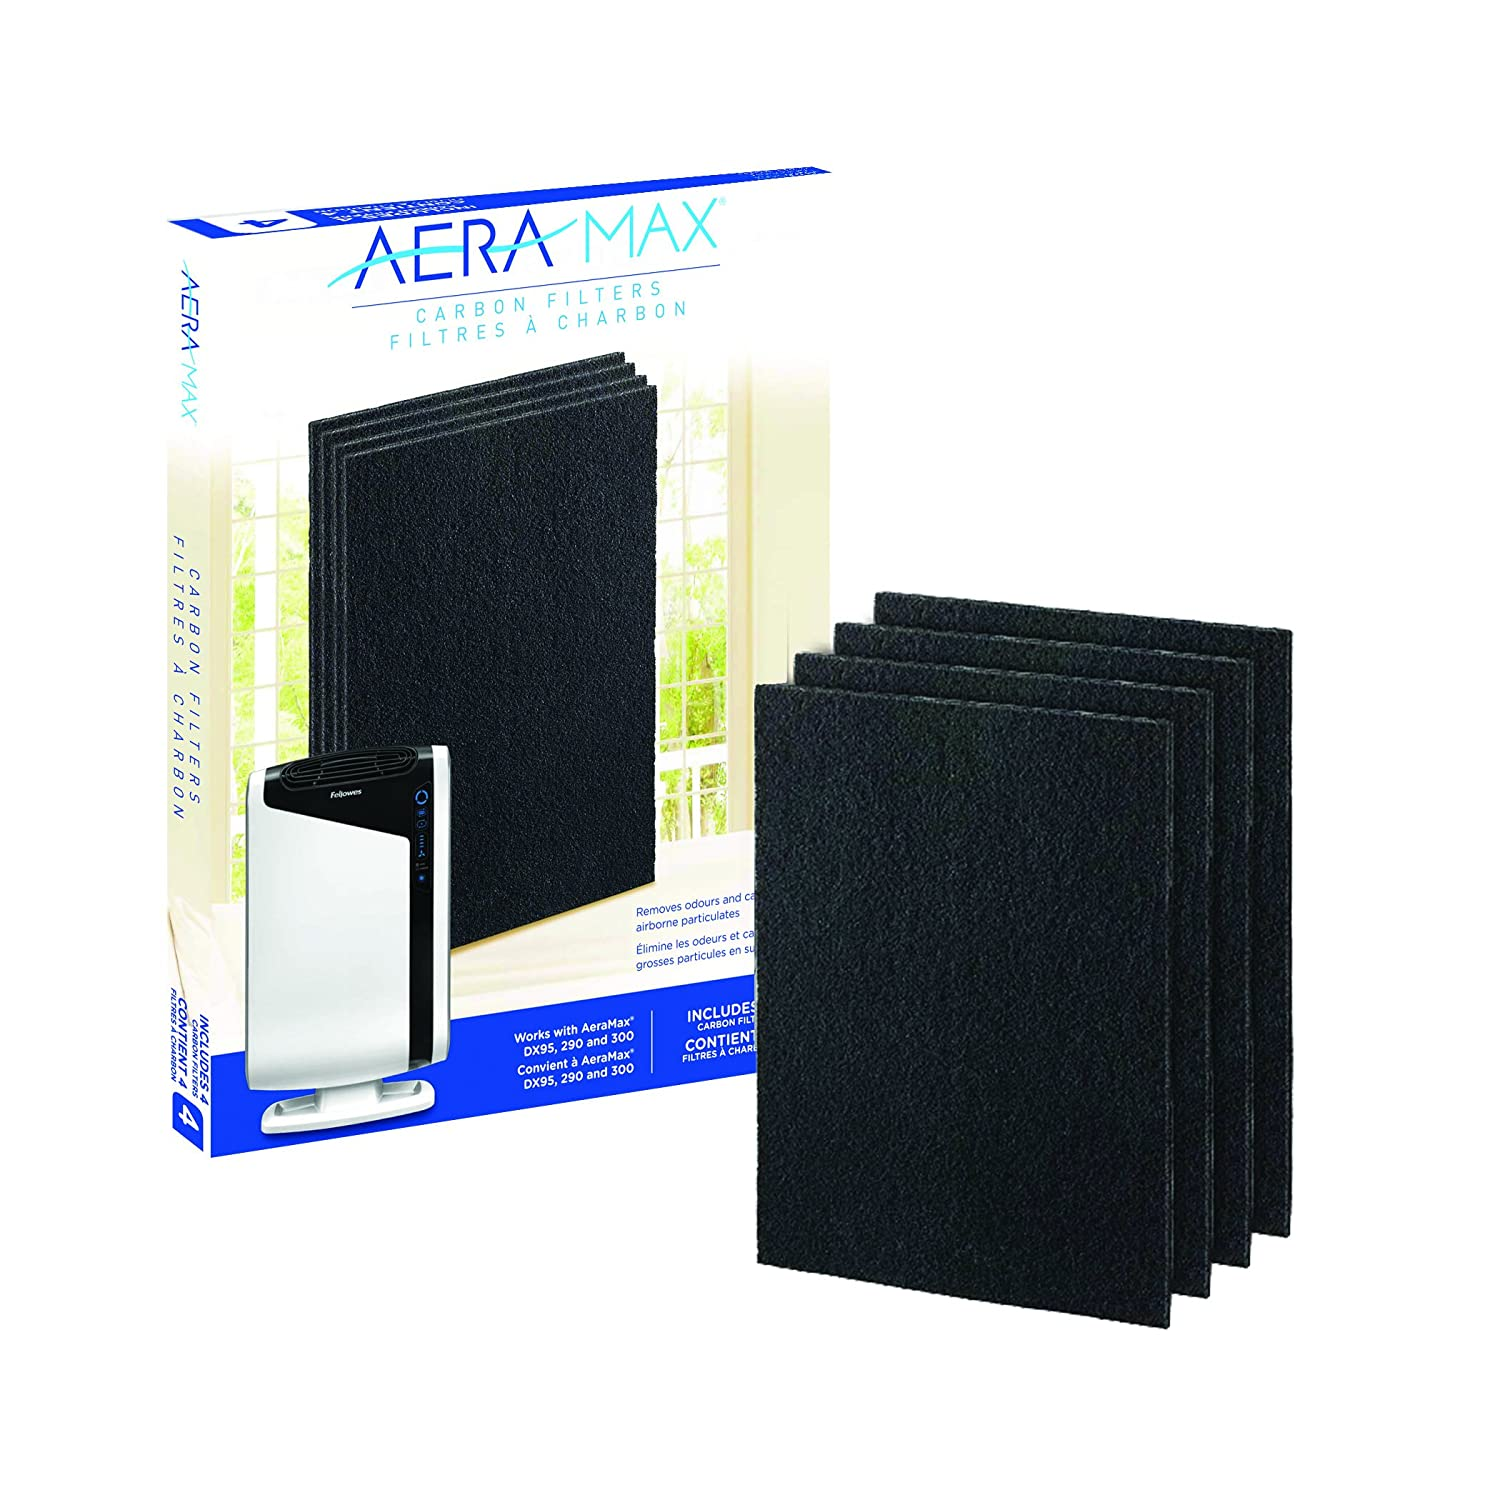 Fellowes Carbon Filters for AeraMax Air Purifiers - 4 Pack (9324201)